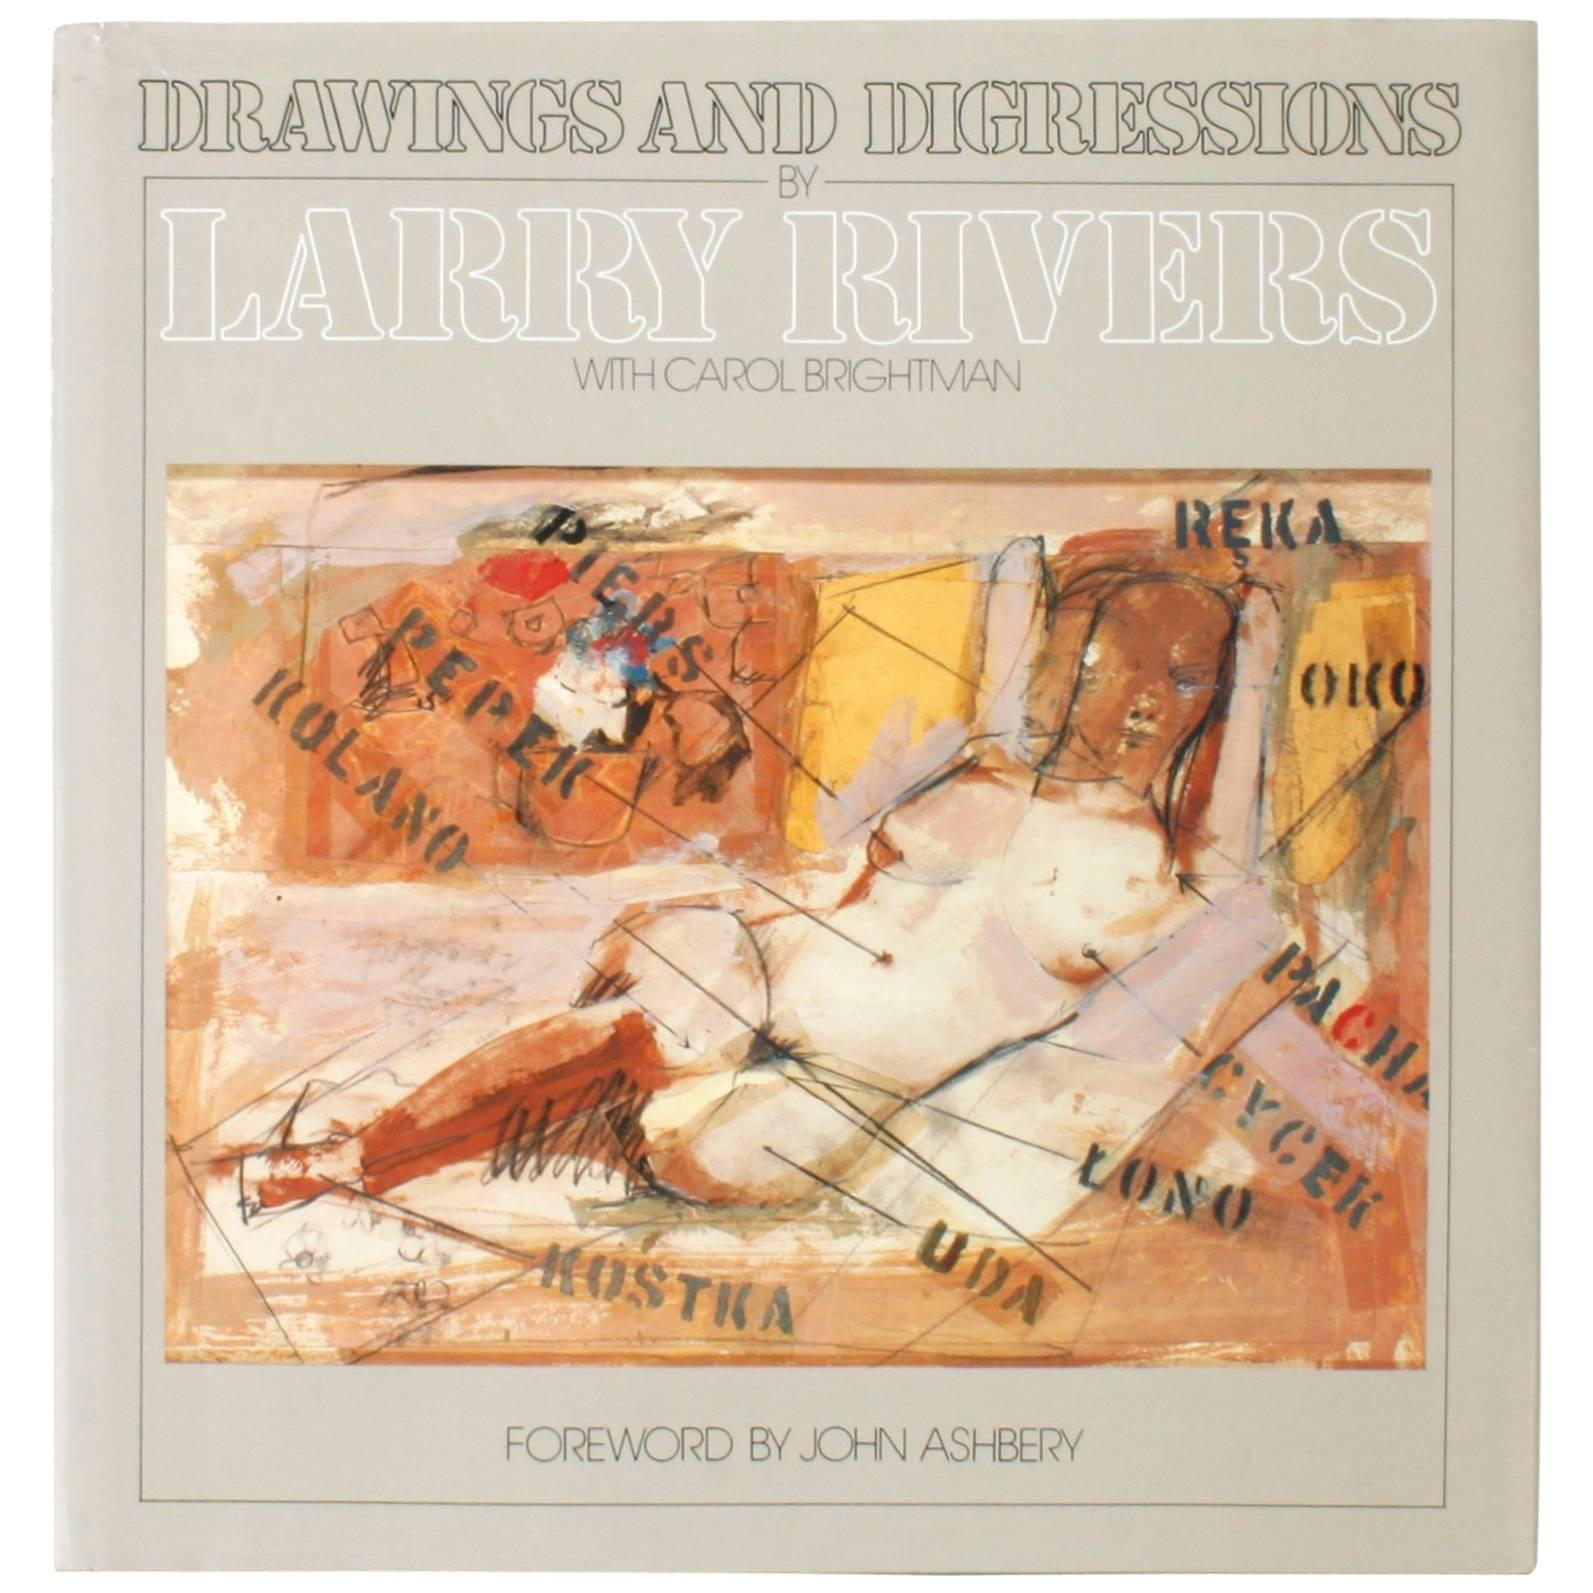 Drawings and Digressions by Larry Rivers, First Edition